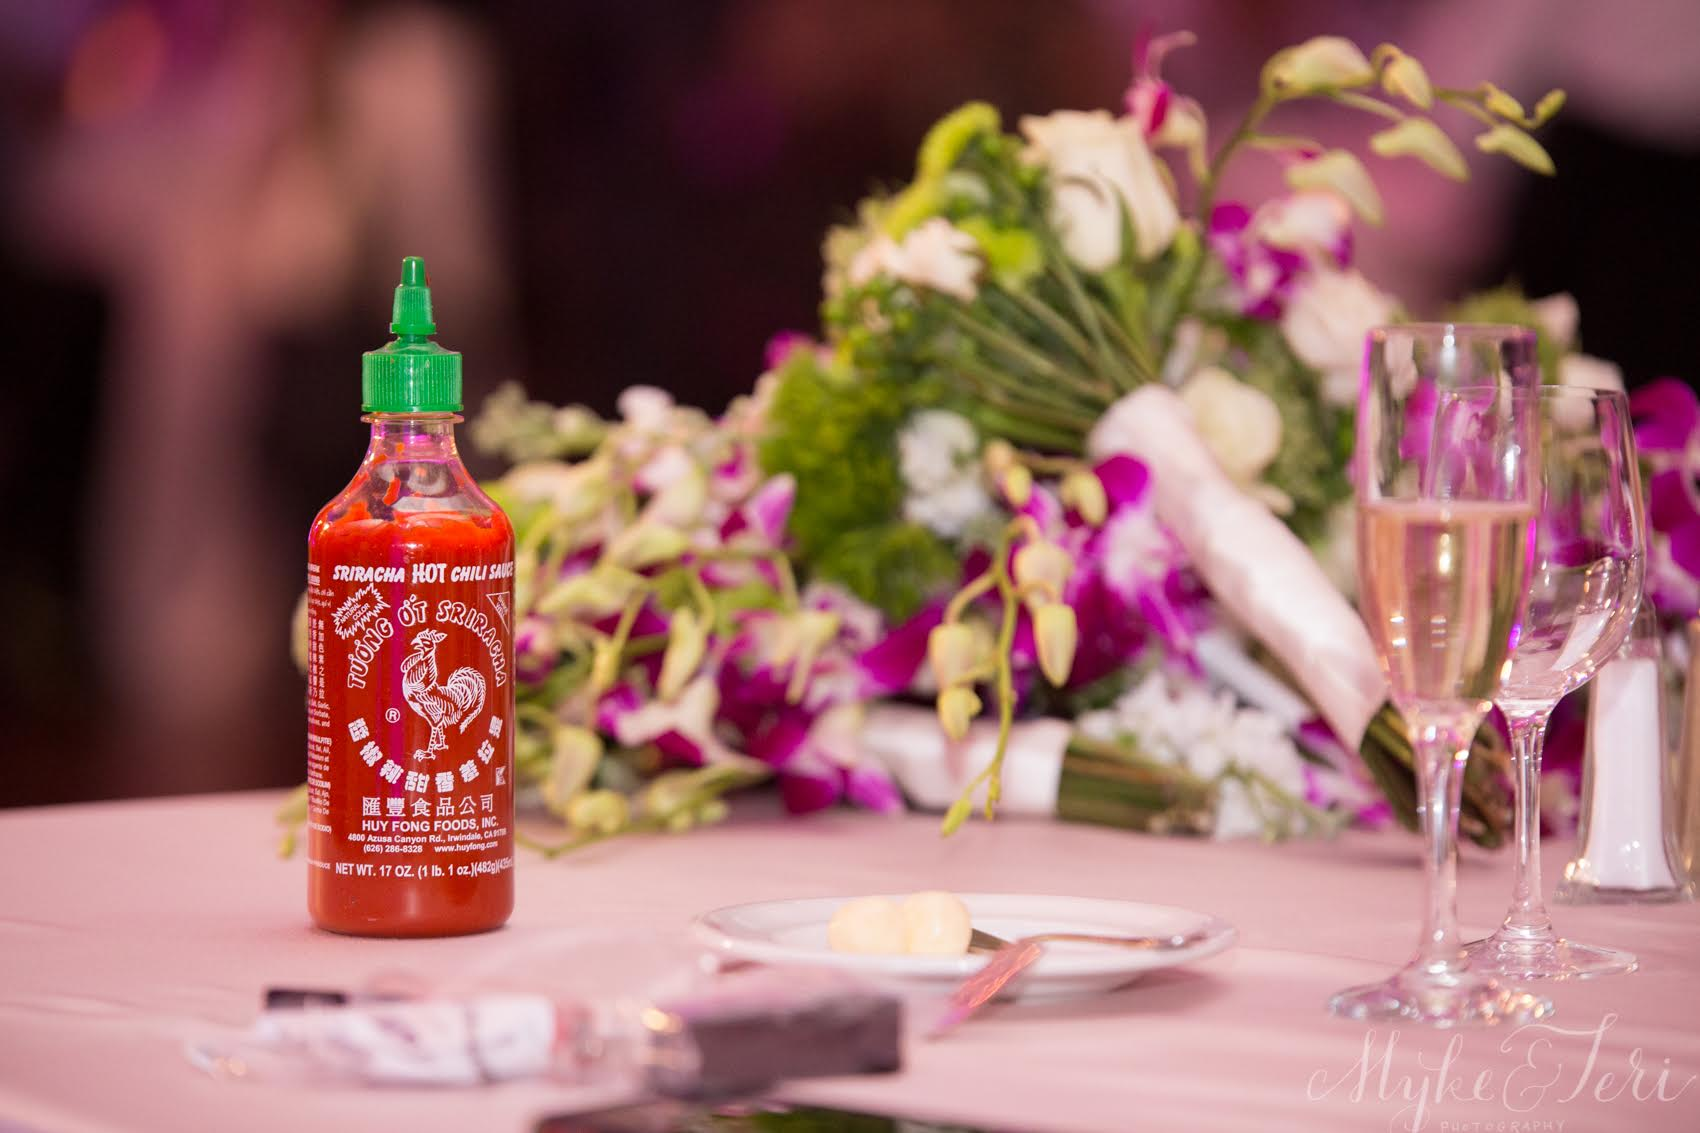 I hope you will find our love story to be as piquant as a bottle of Sriracha. Actually, sriracha isn't that hot to me! #deadtastebuds However, our poor James Beard event-hosting chef's face when he saw that we brought a bottle of sriracha to the reception -- if only as a gag -- now that was heated ...